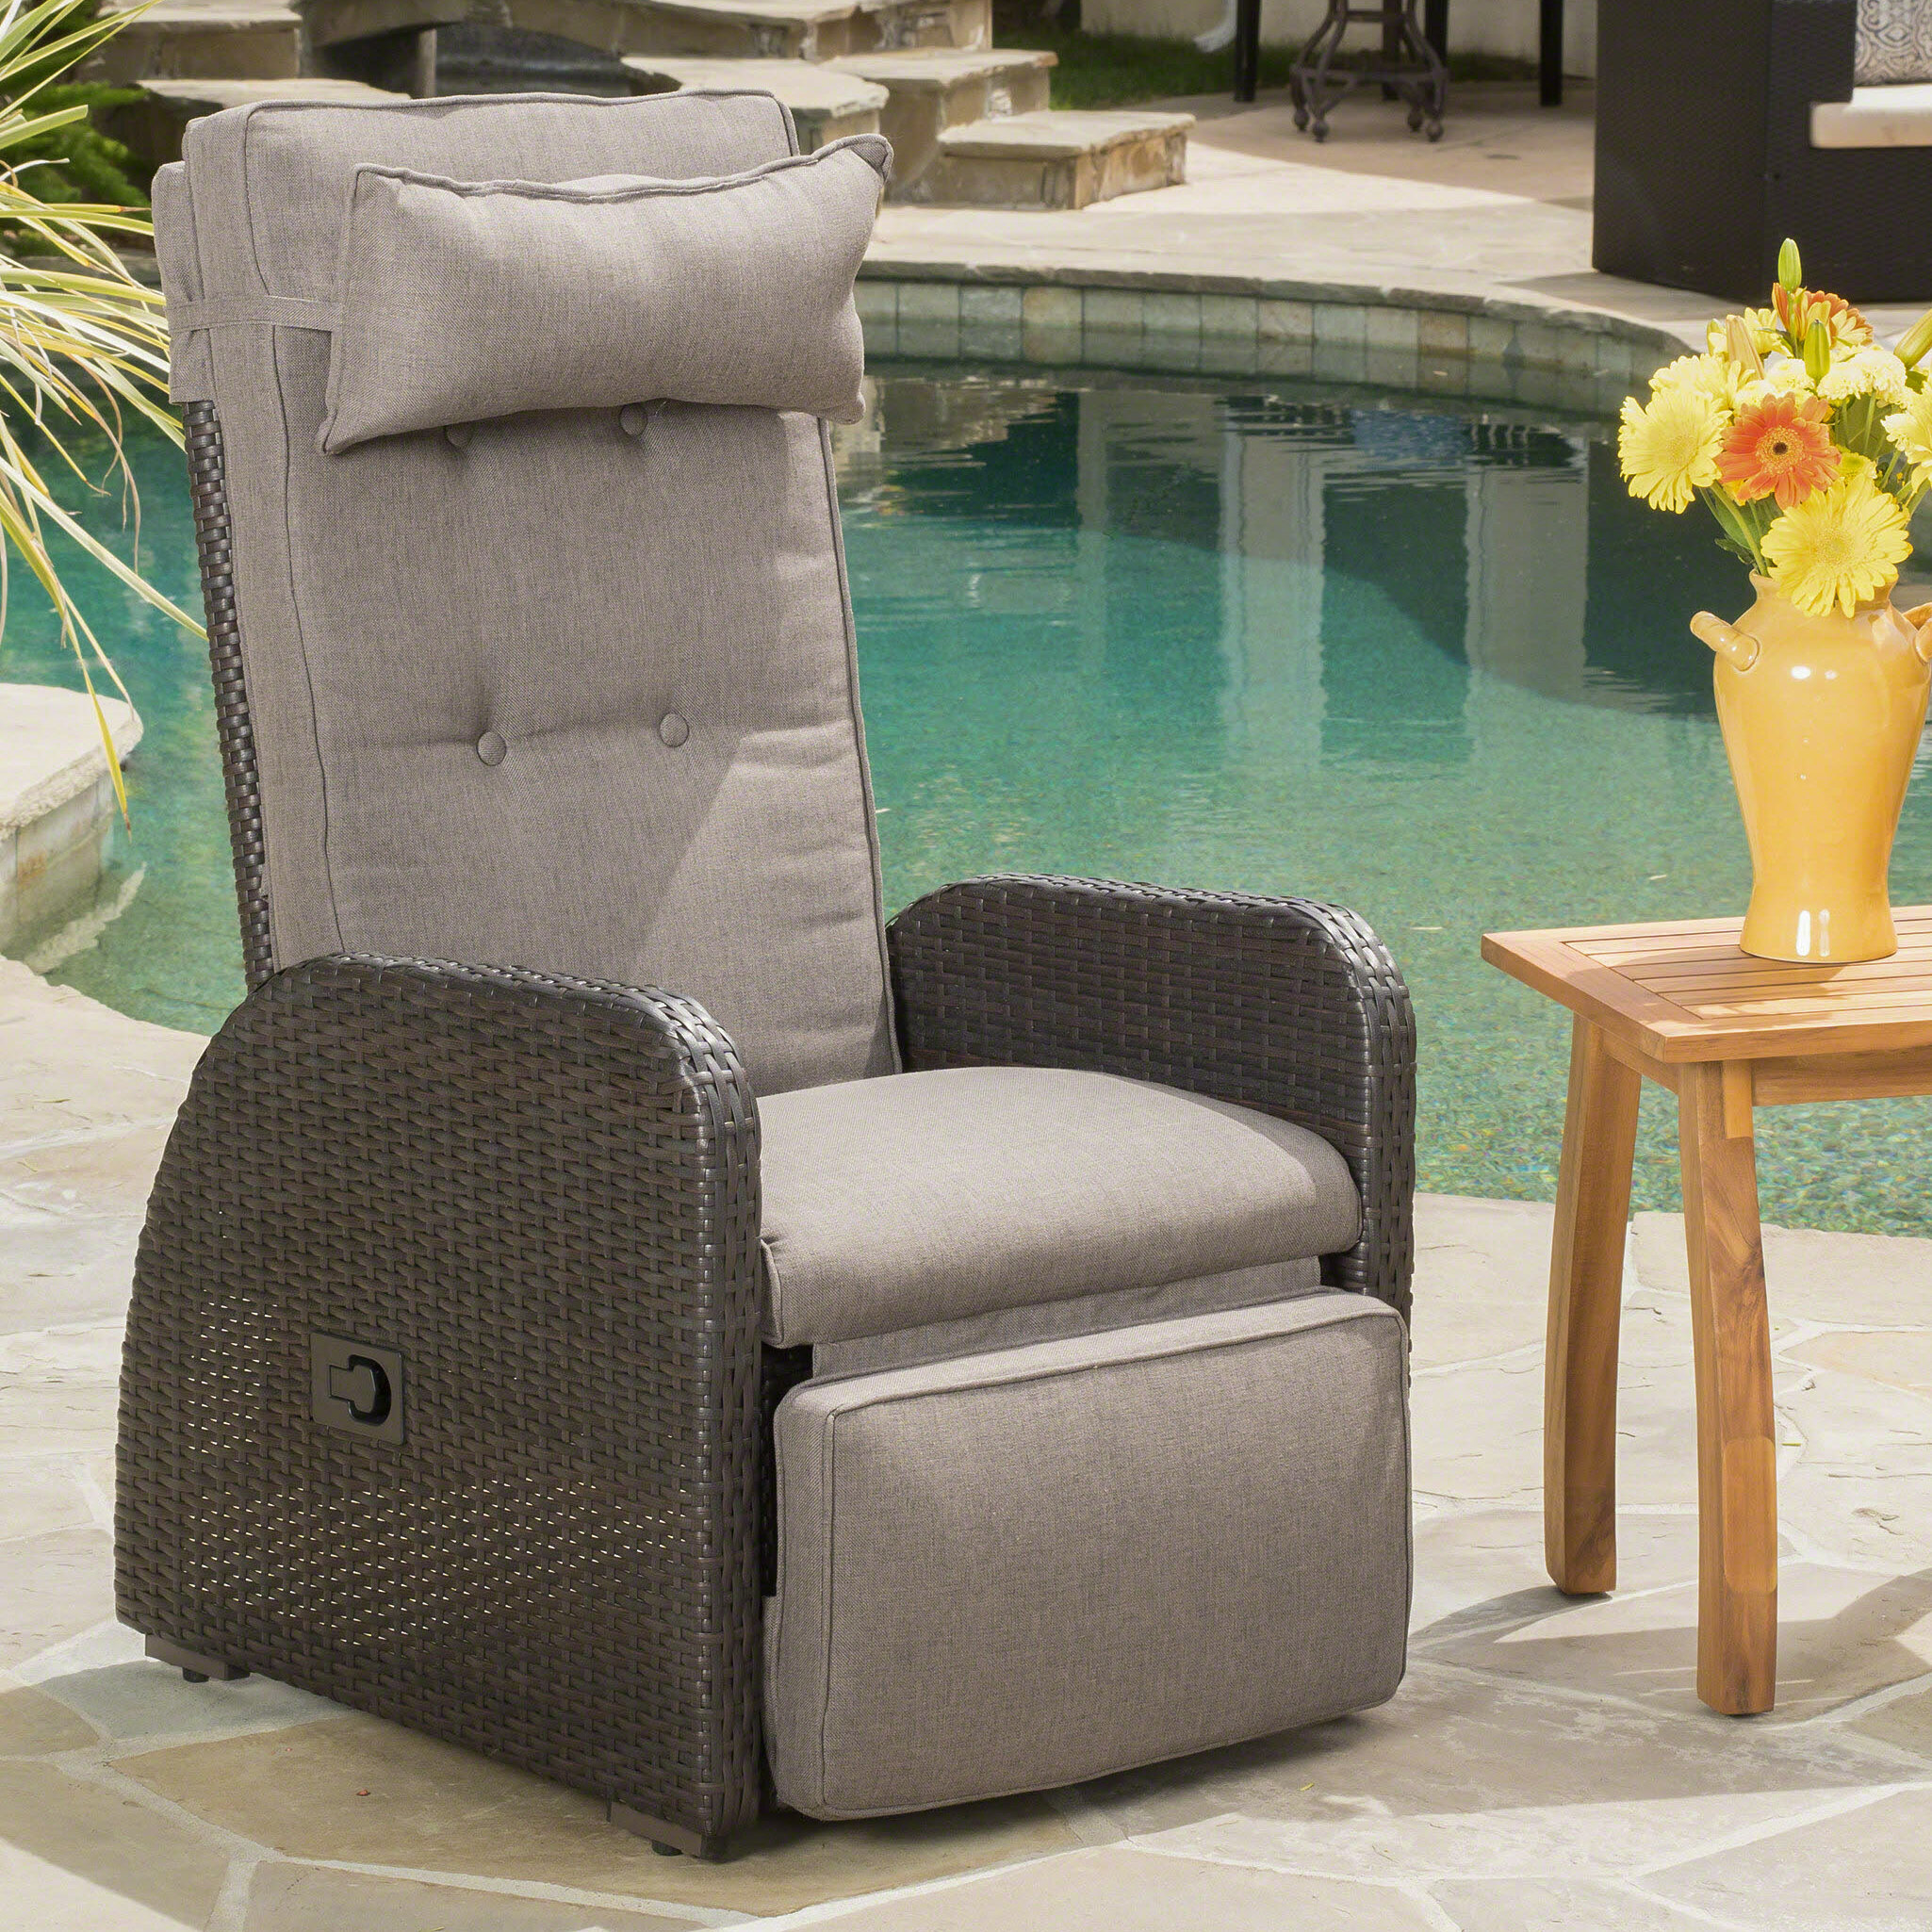 Allstate Patio Furniture.Keenes Recliner Patio Chair With Cushion